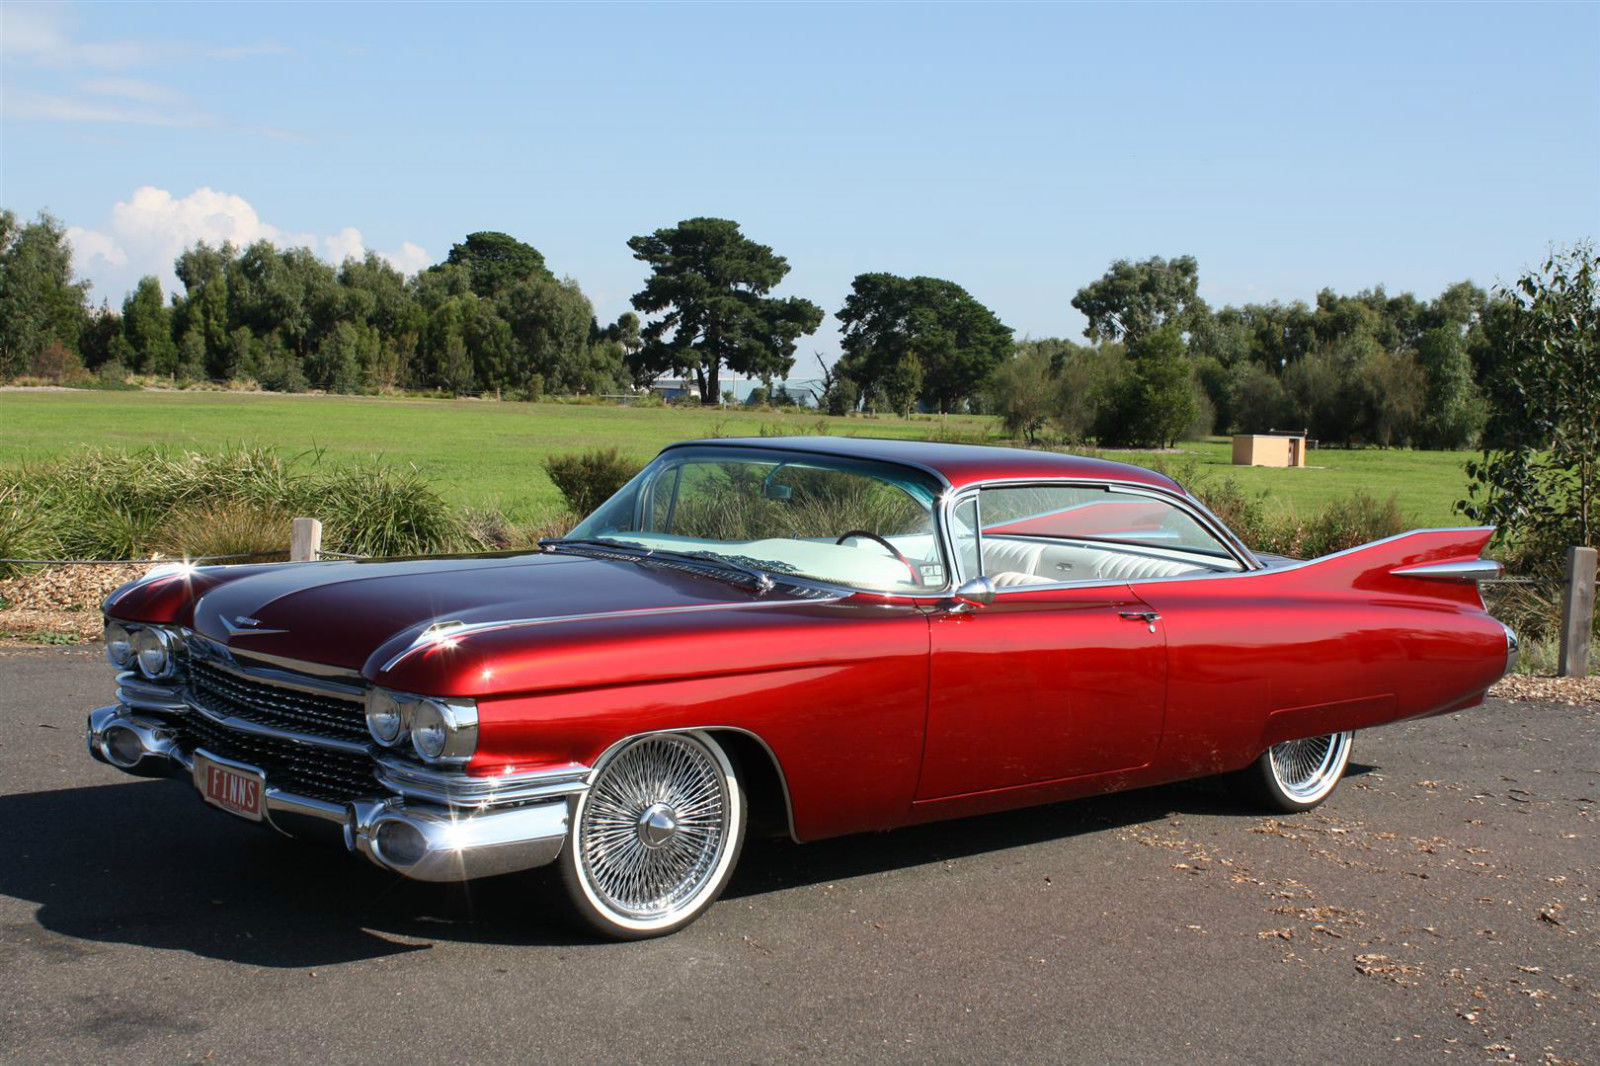 hight resolution of 1959 cadillac series 62 coupe deville candy red custom built show car 390cbi v8 10 1959